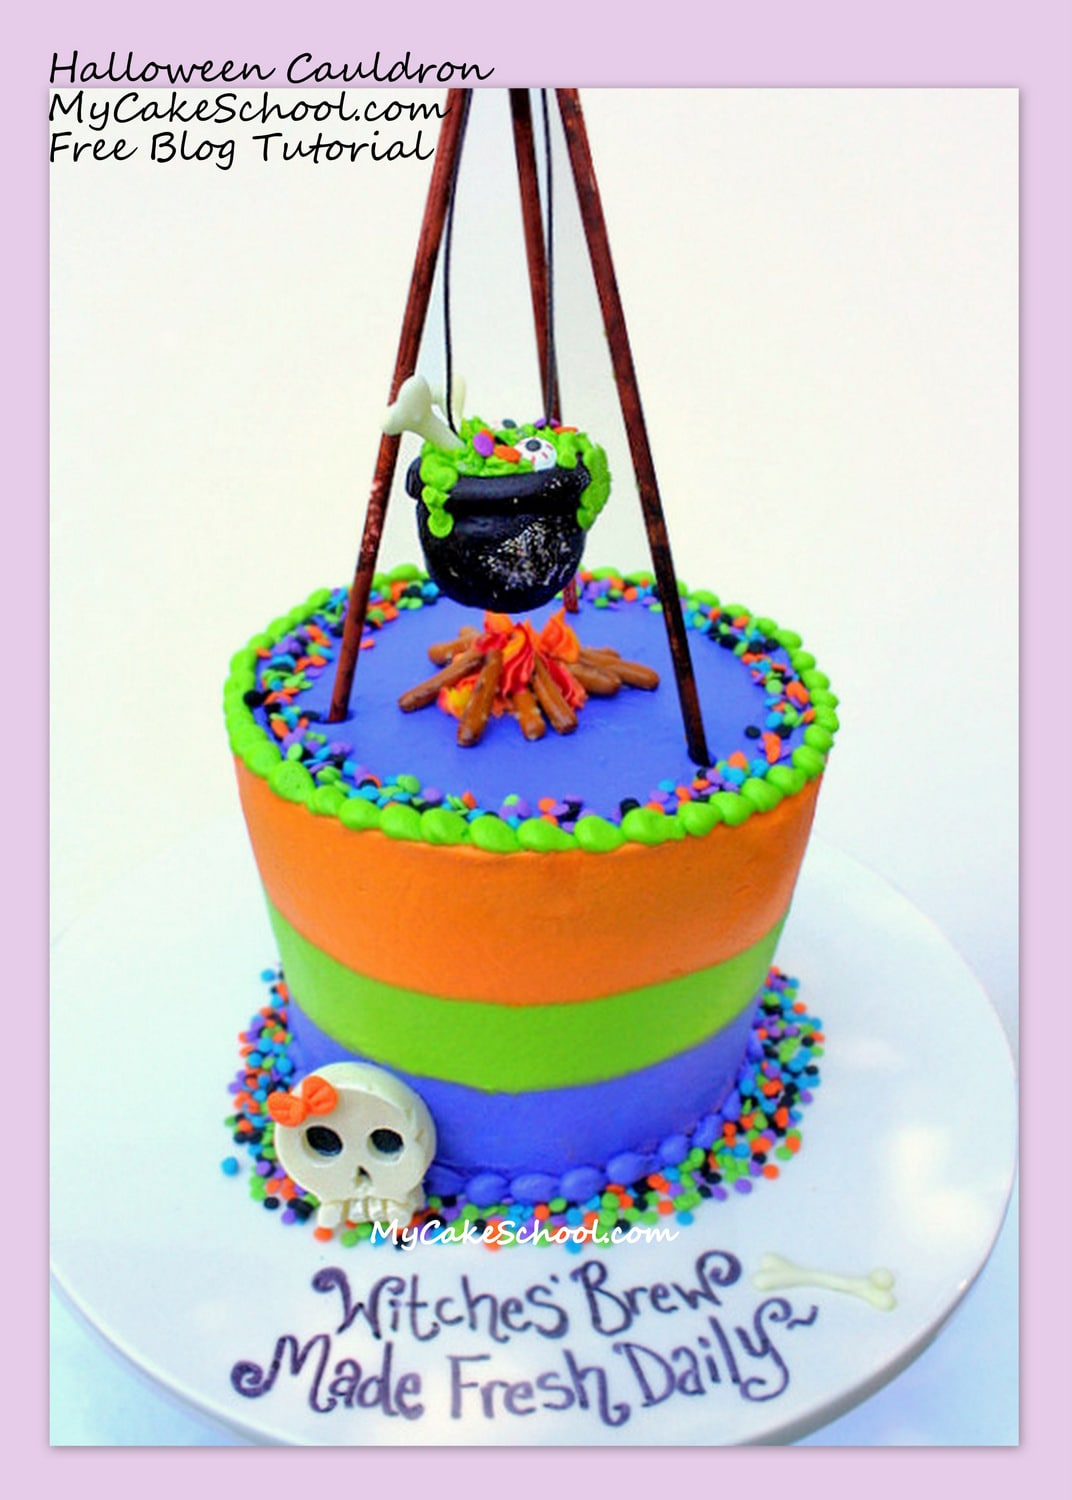 CUTE Witches Brew {free} Cake Tutorial by MyCakeSchool.com!